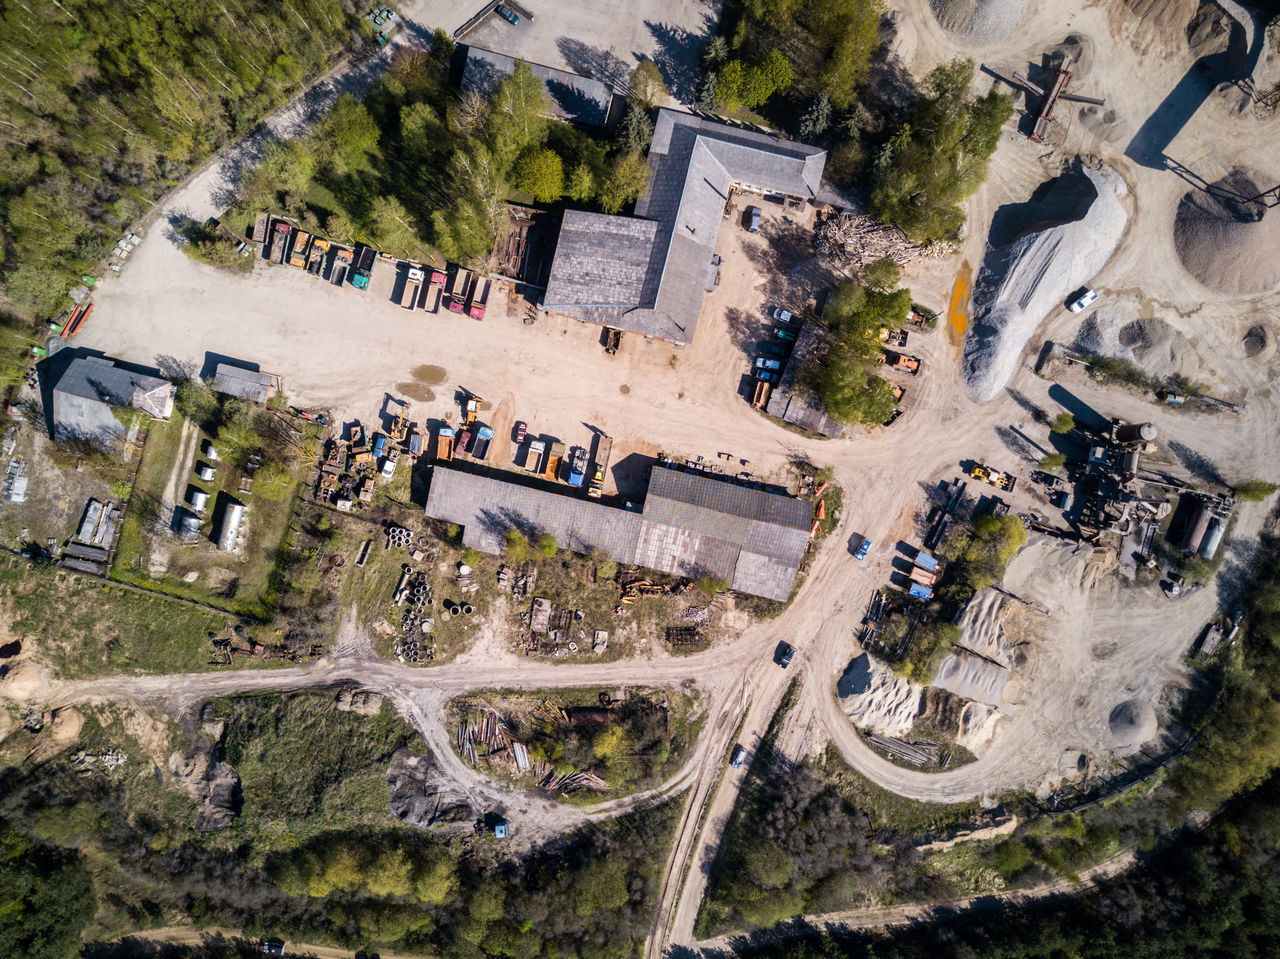 Abandoned old quarry with old heavy vehicles left outside Abandoned Aerial View Architecture Bird View Building Exterior Built Structure Car Chaotic DJI Mavic Pro Drone  Dronephotography Heavy Vehicle High Angle View Industry Industy Junkyard Mavic Pro Mill Old Plant Quarry Rusty Rustygoodness Transportation Vehicles